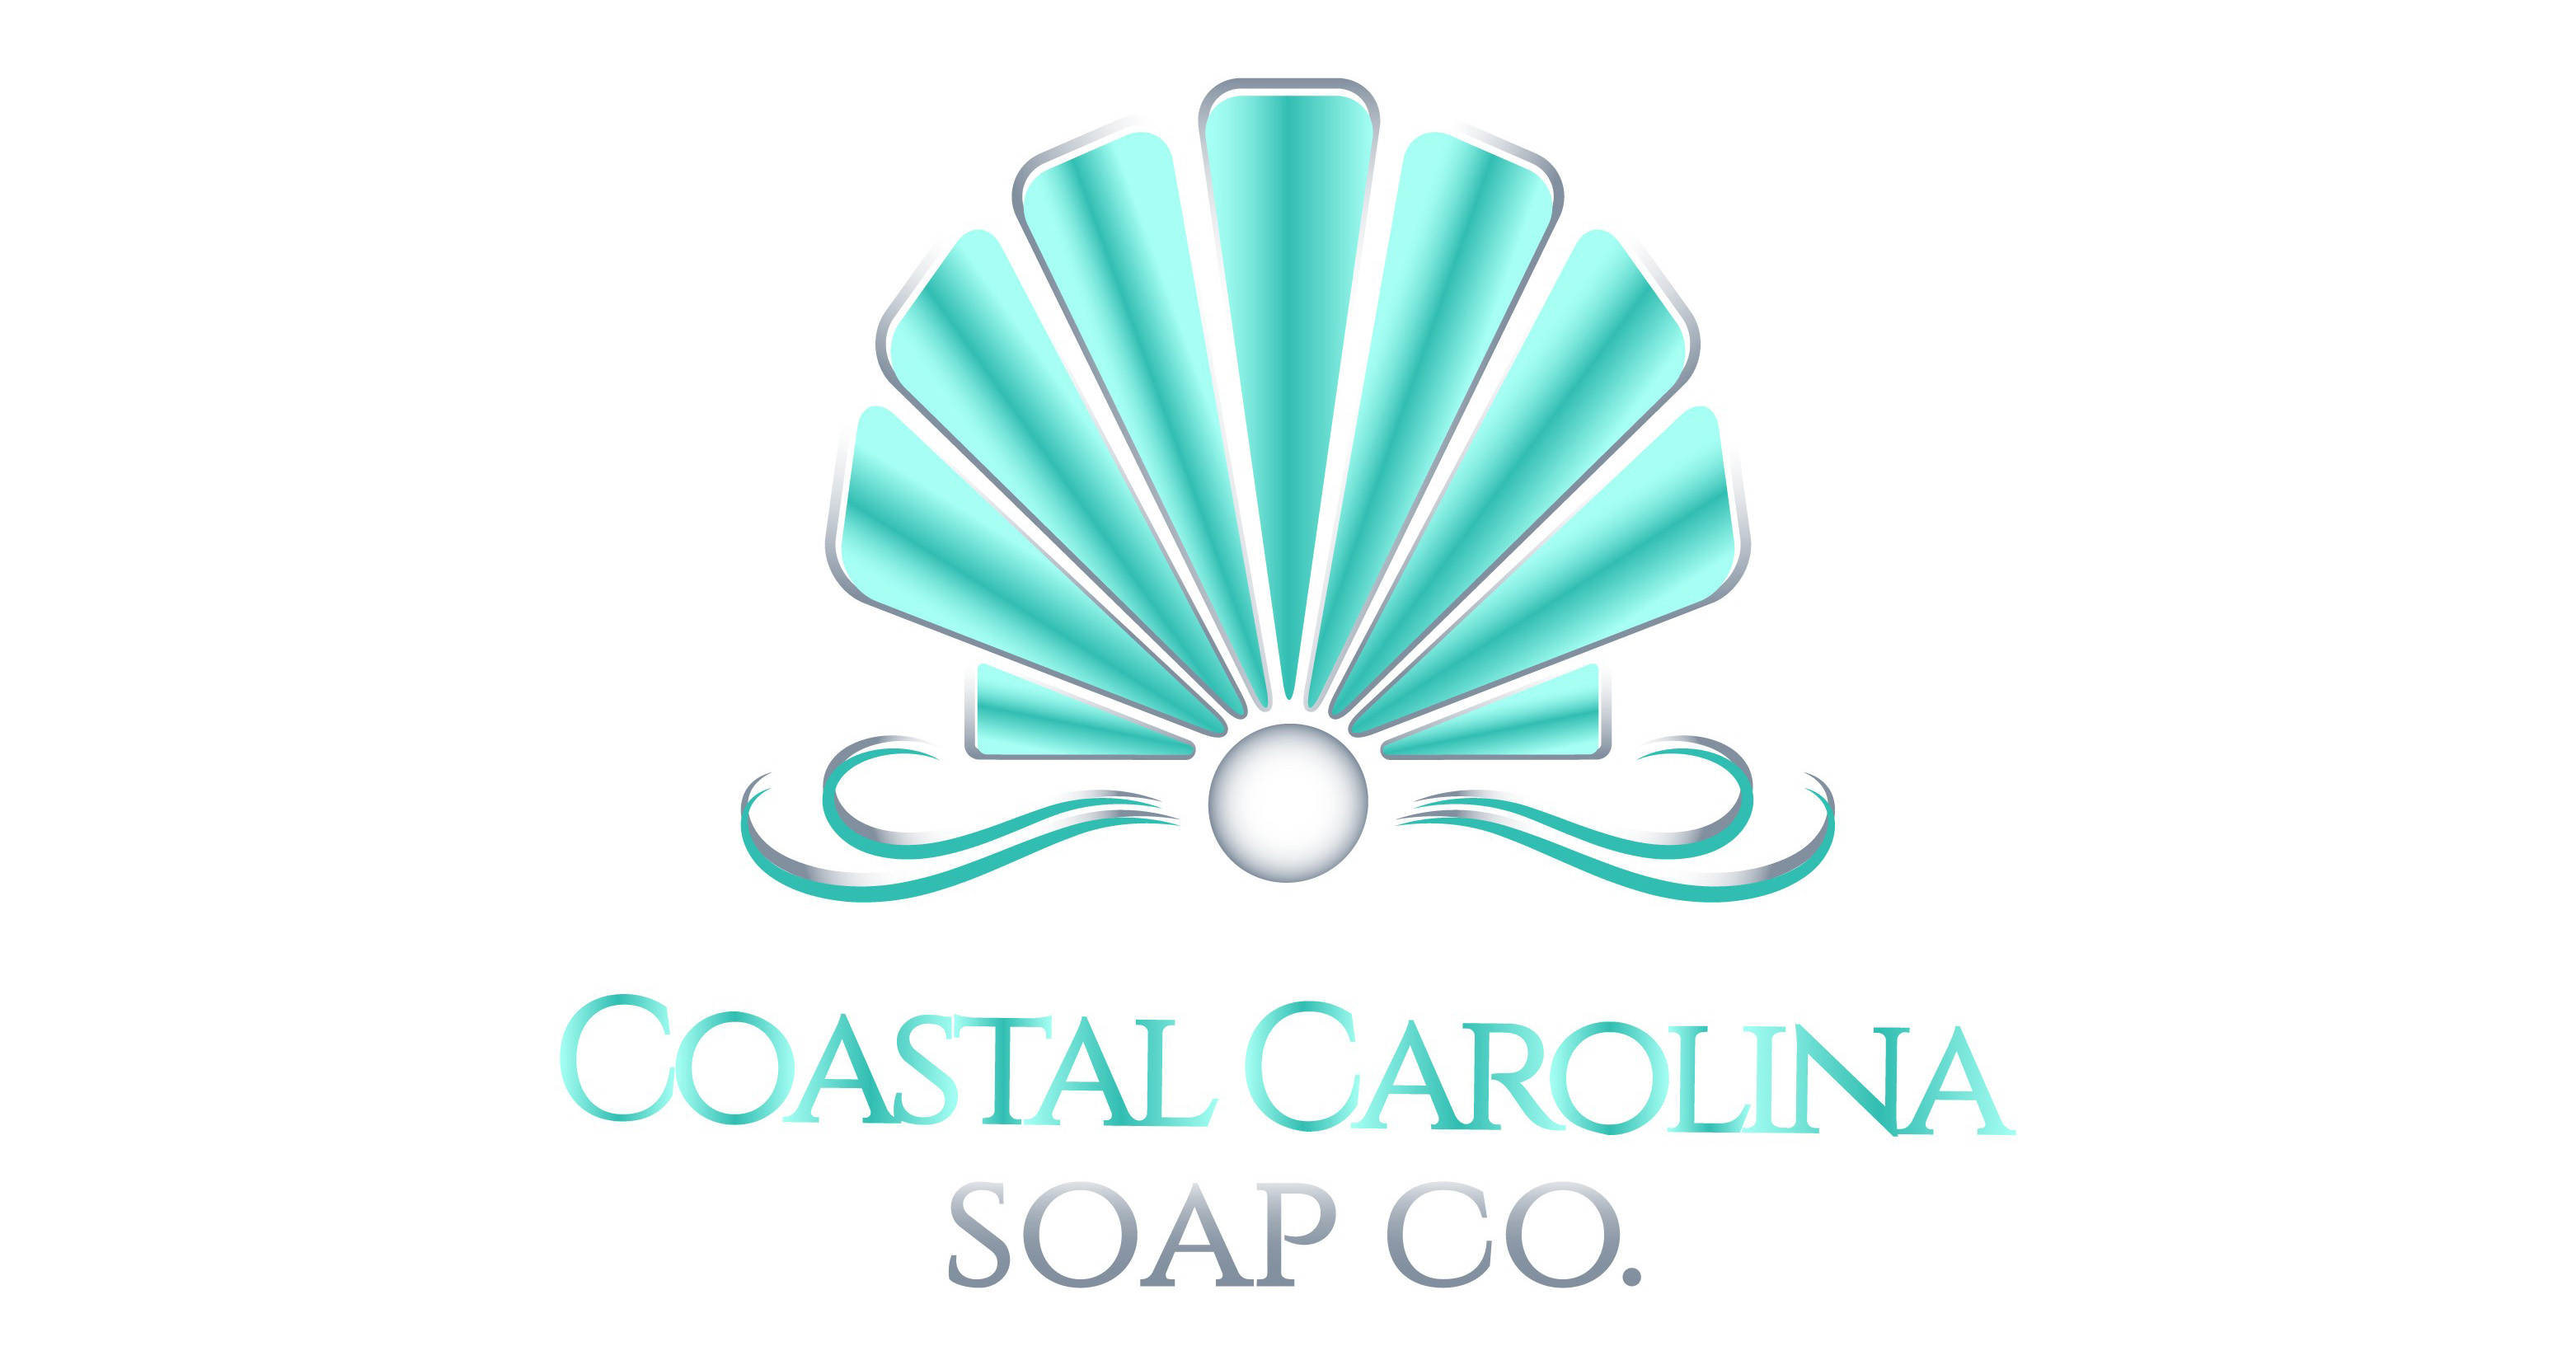 Coastal Carolina Soap Co.